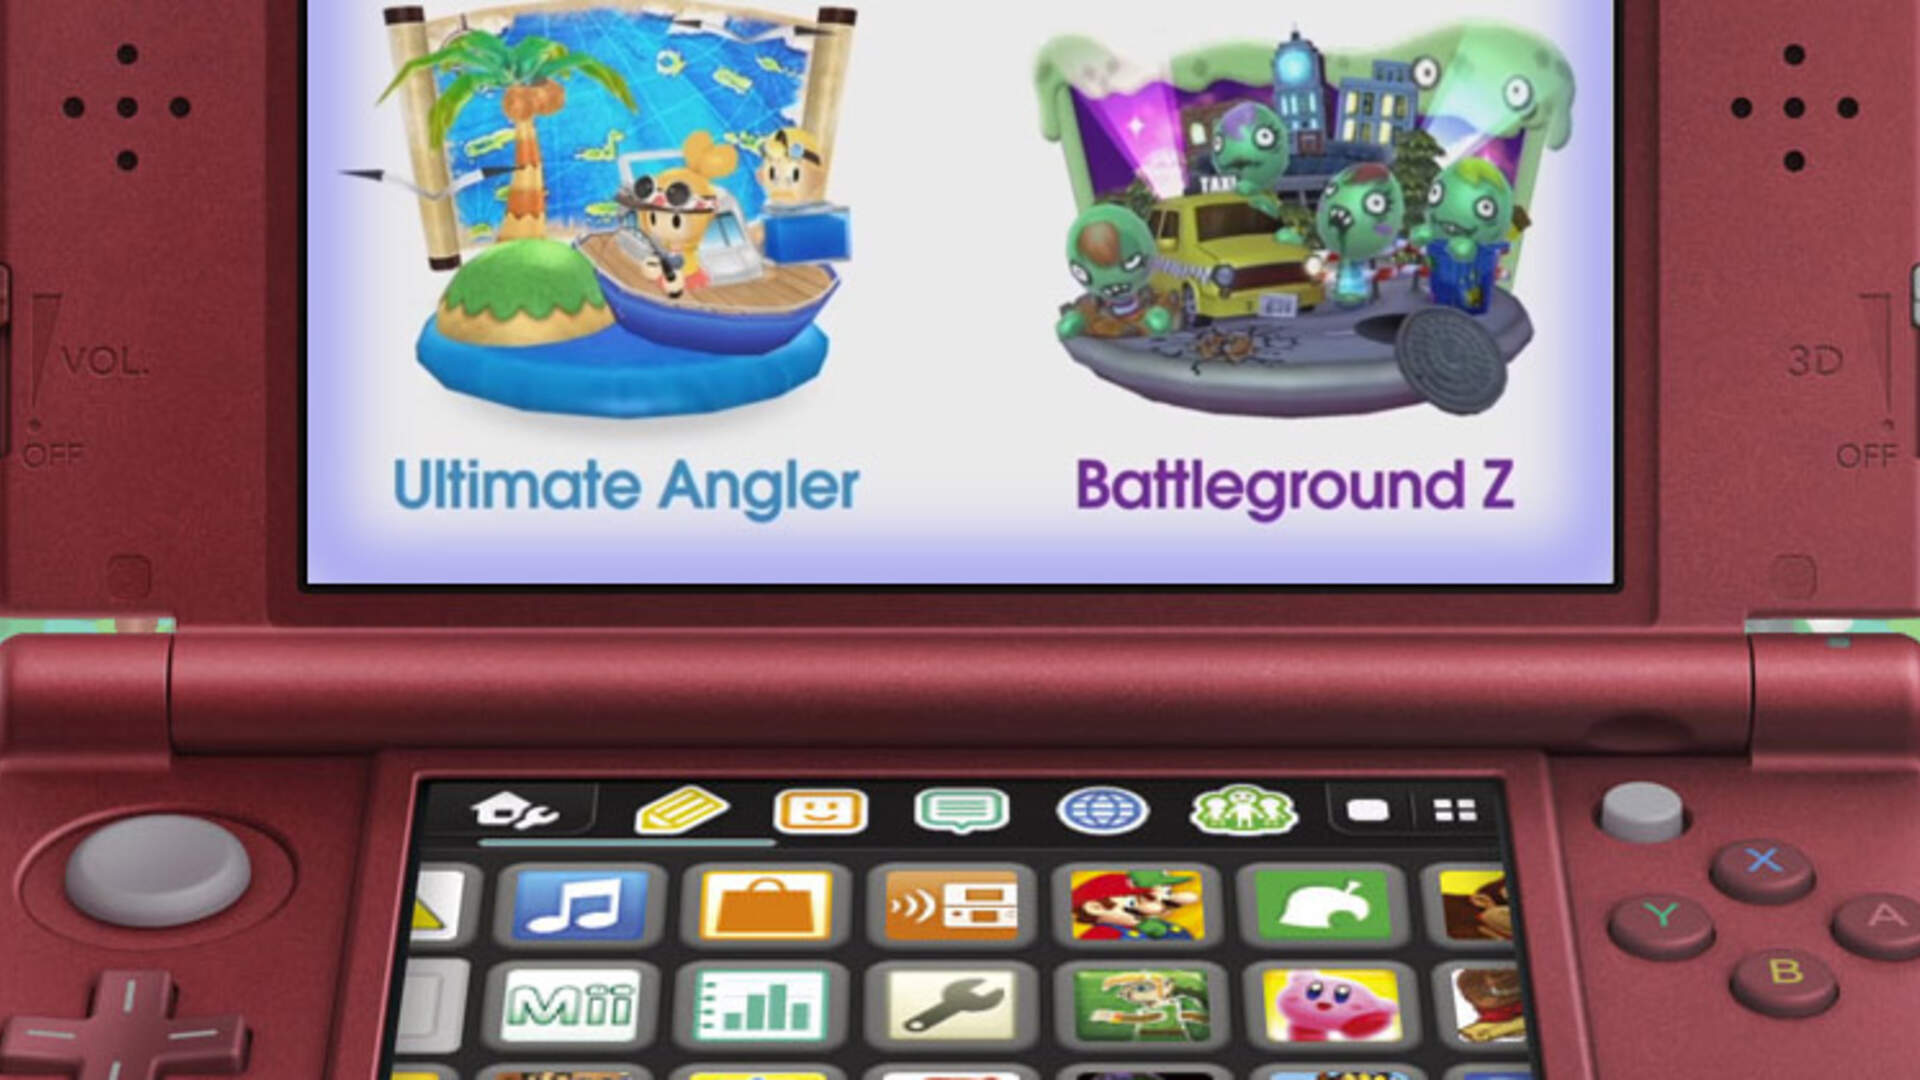 3Ds Future Releases with streetpass games, nintendo quietly plies the cutting